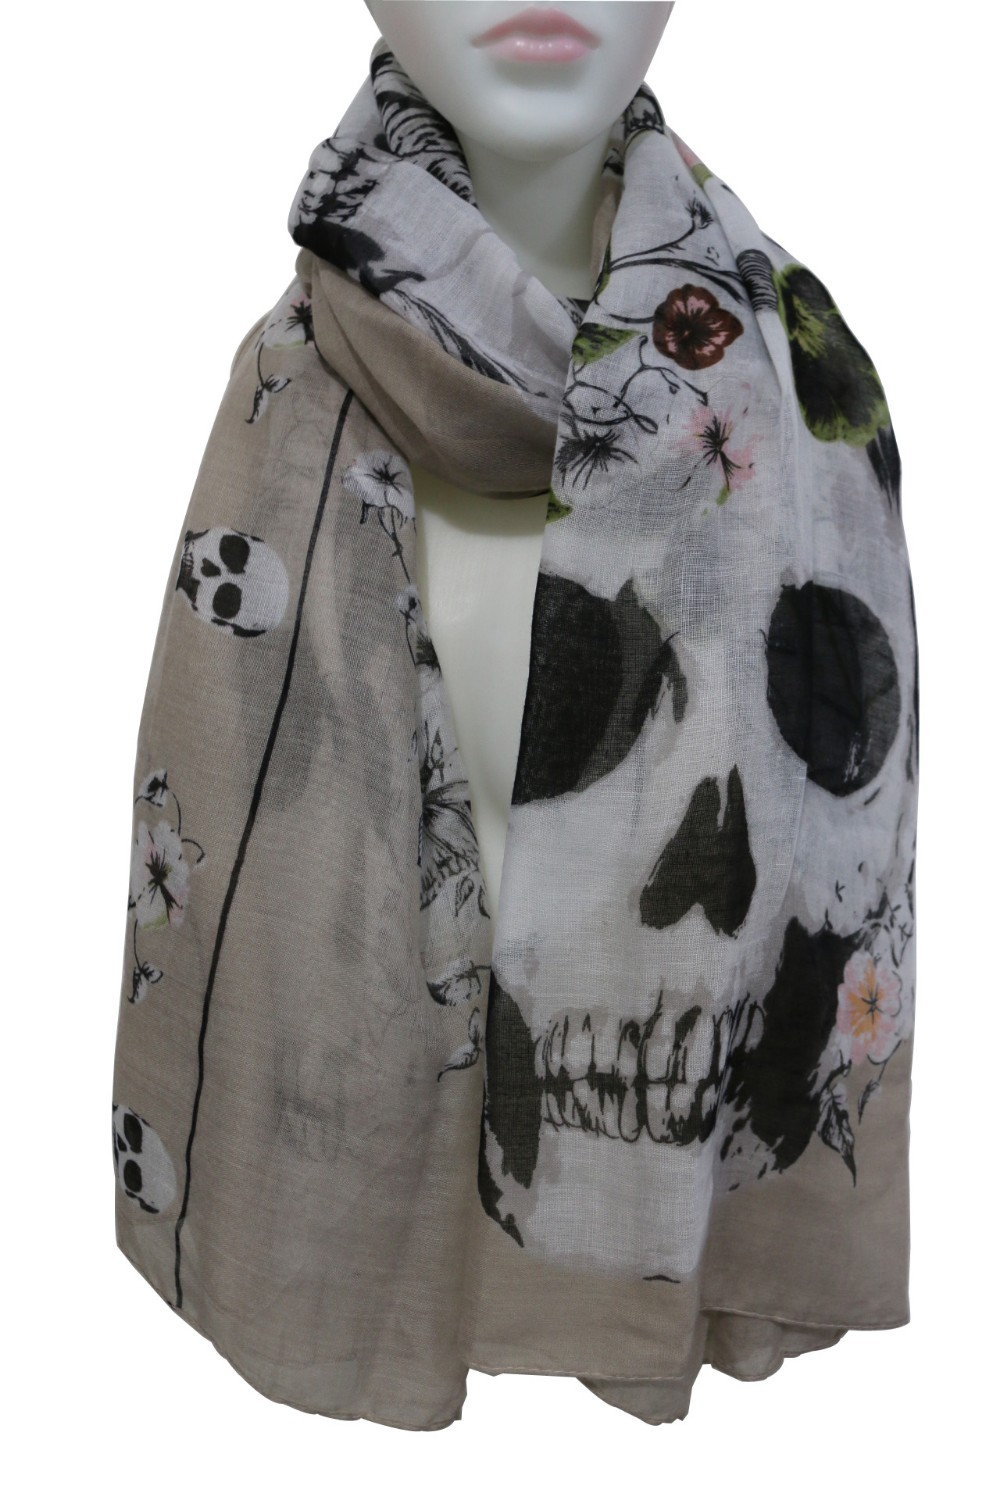 WINFOX 2019 New Fashionable Punk Ladies White Black Skull Floral Print Long Scarves Shawls Wrap Womens